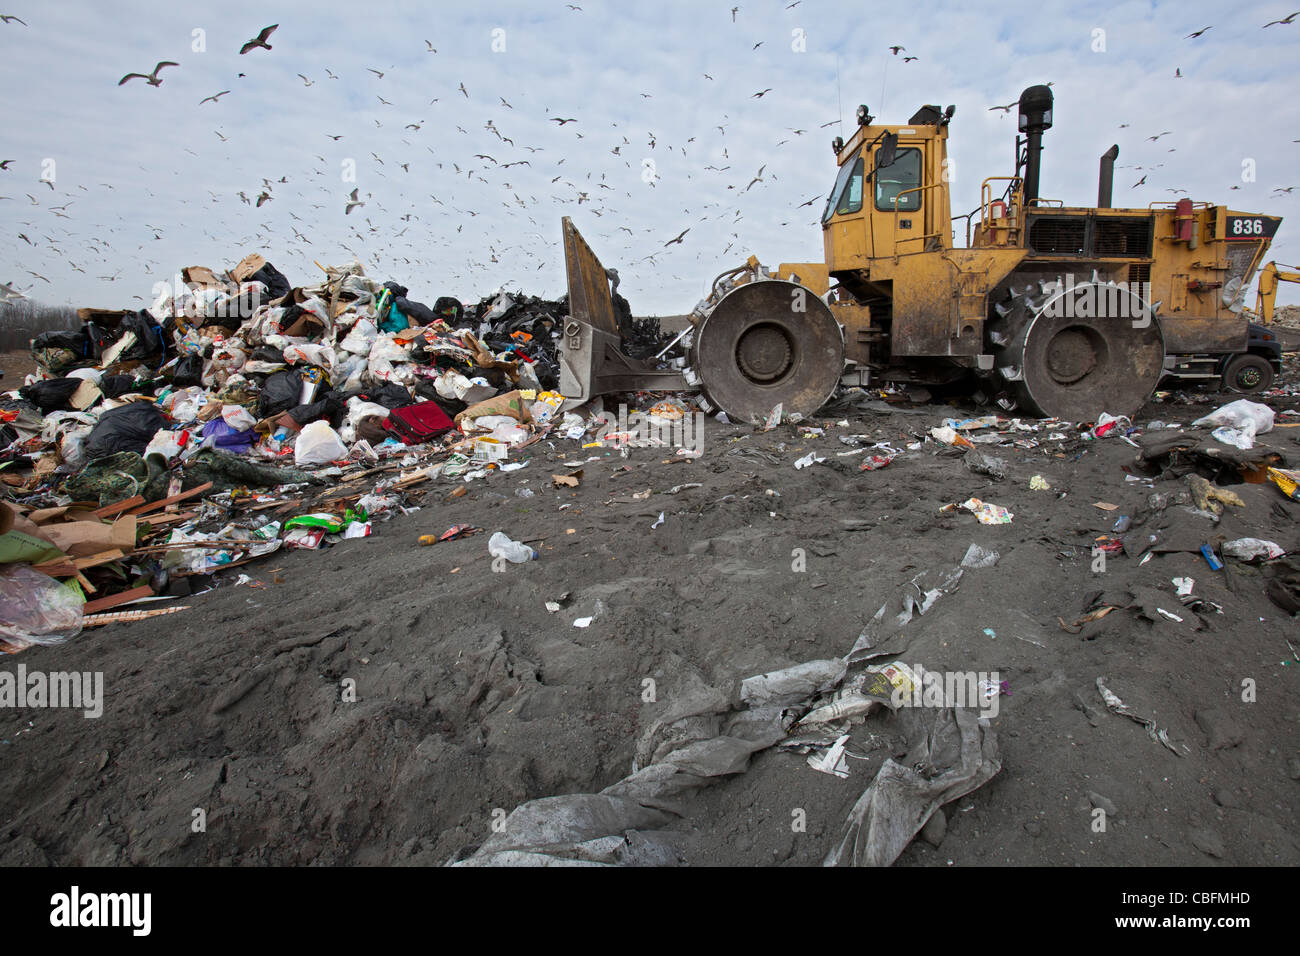 Smith's Creek, Michigan - A bulldozer levels and compacts garbage at St. Clair County's Smith's Creek - Stock Image